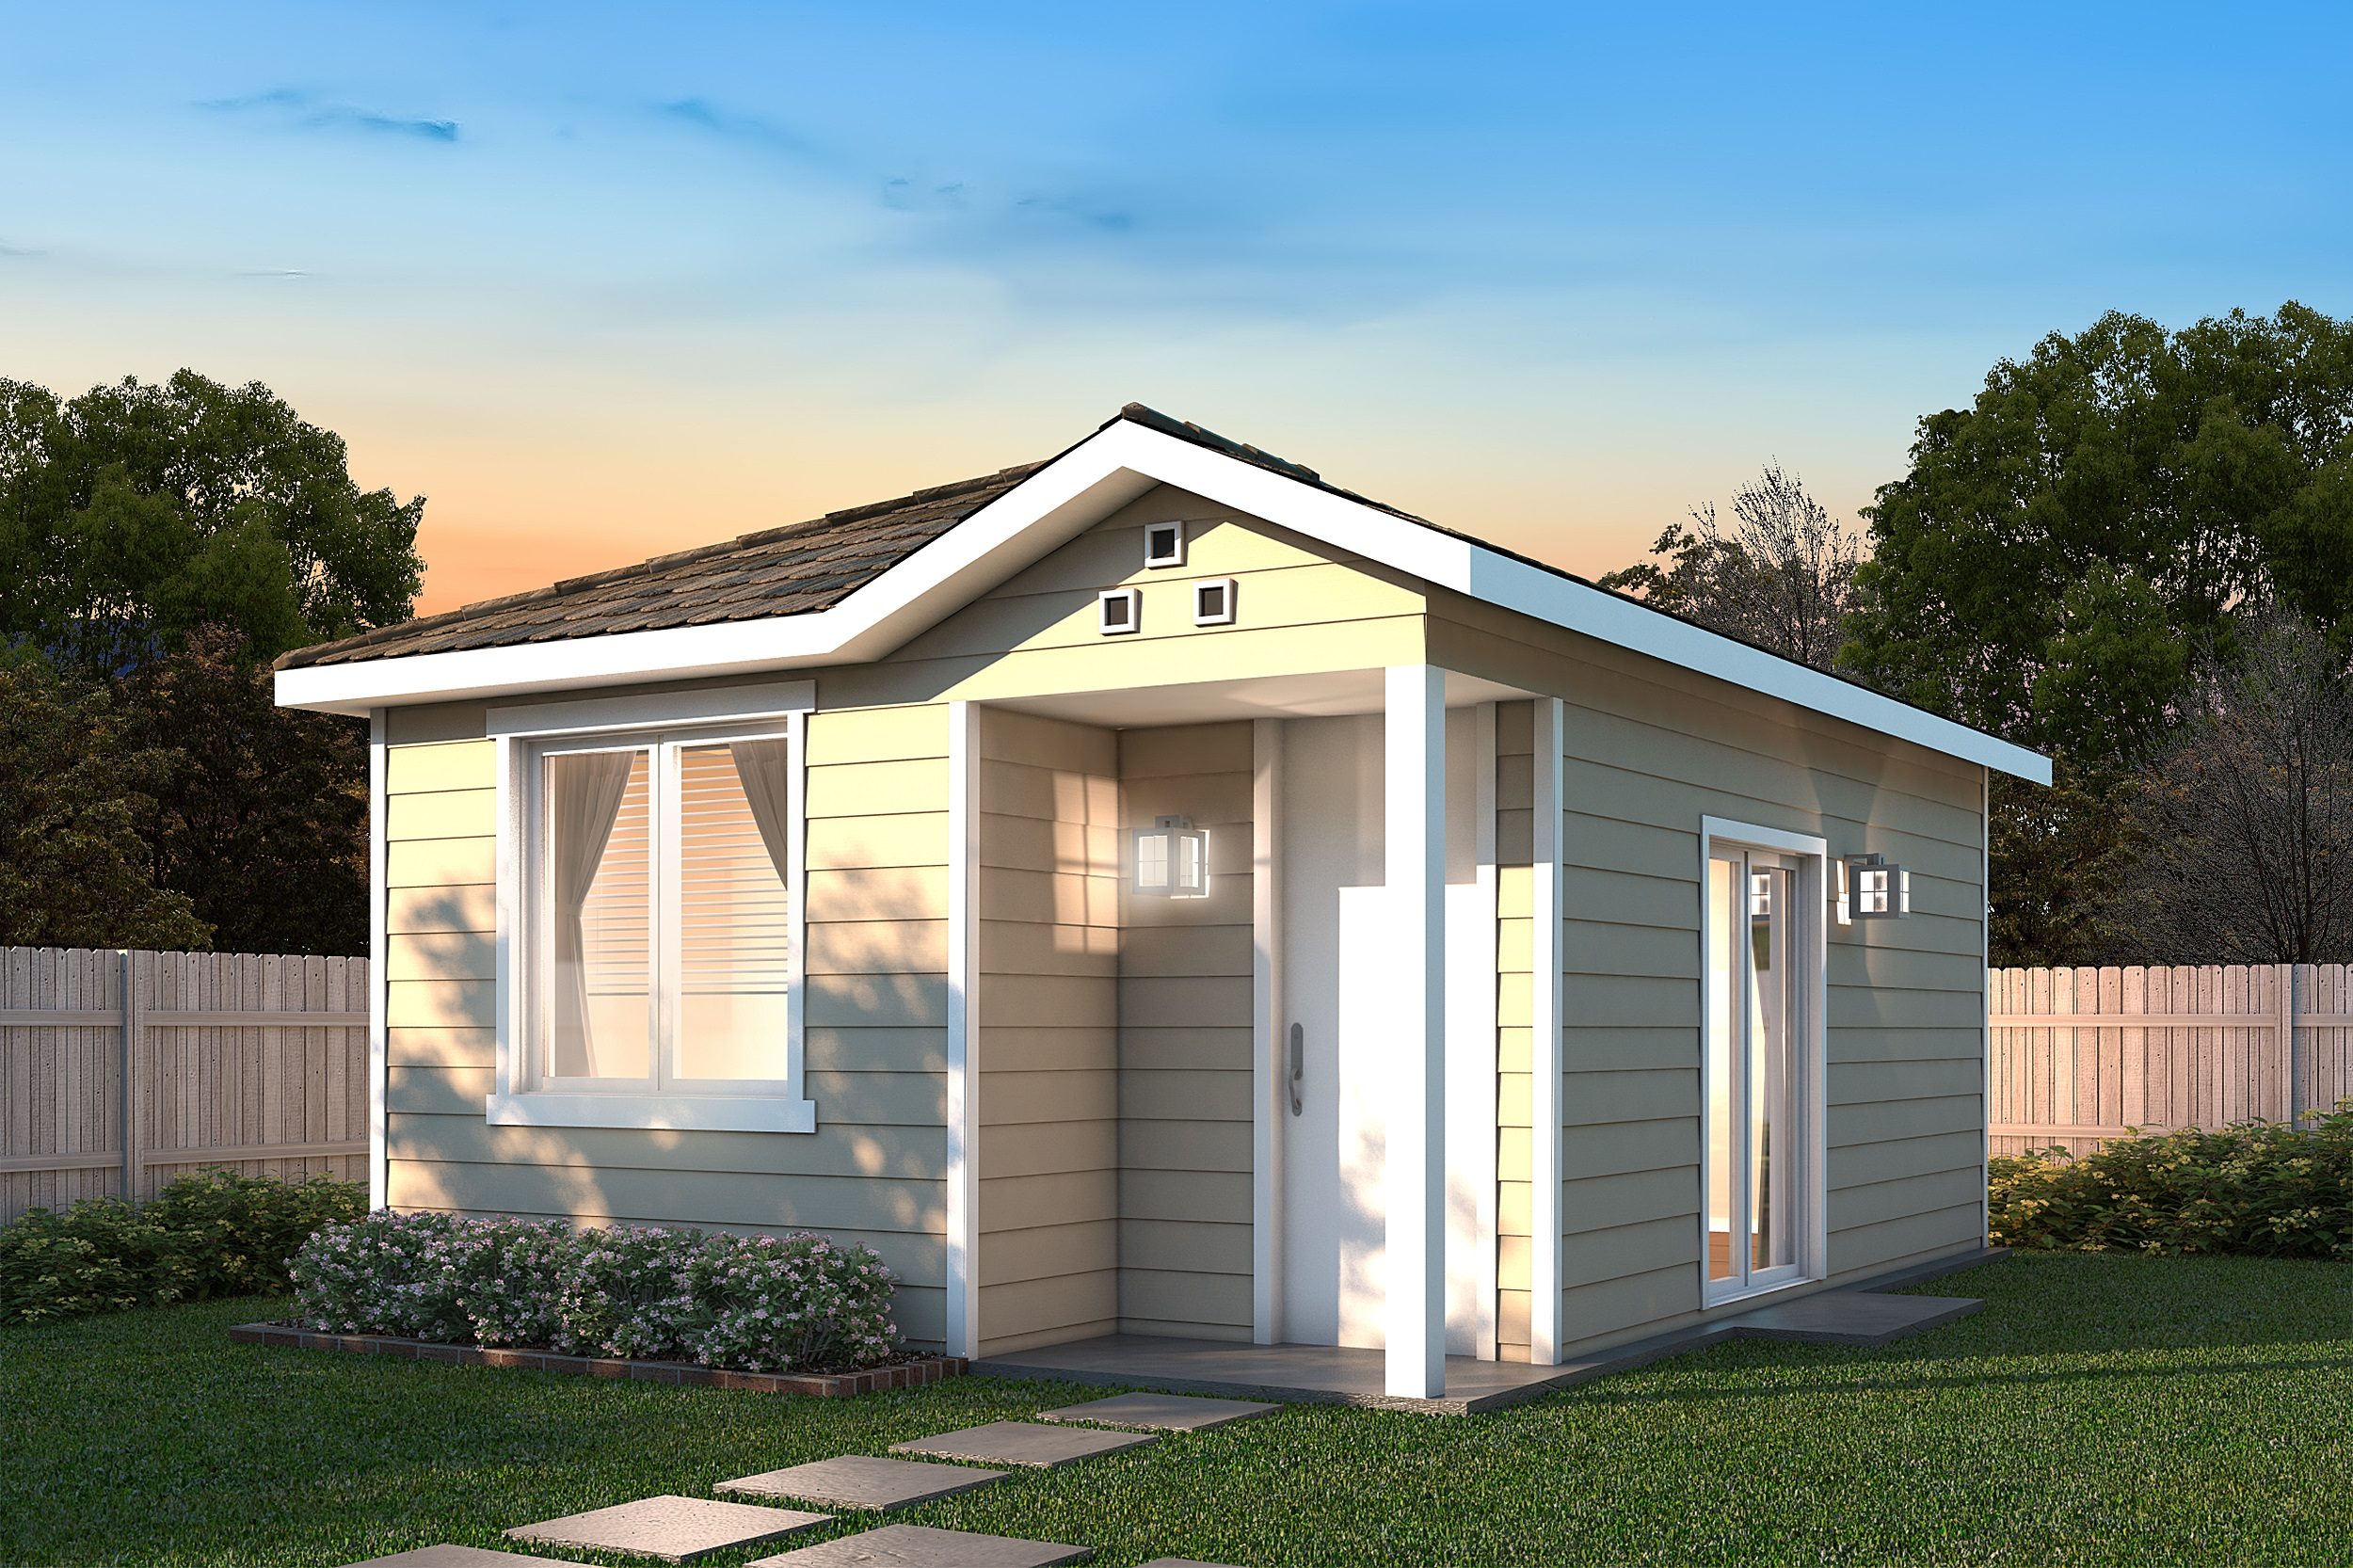 G j gardner homes debuts 10 new granny flat designs for Modular granny flat california